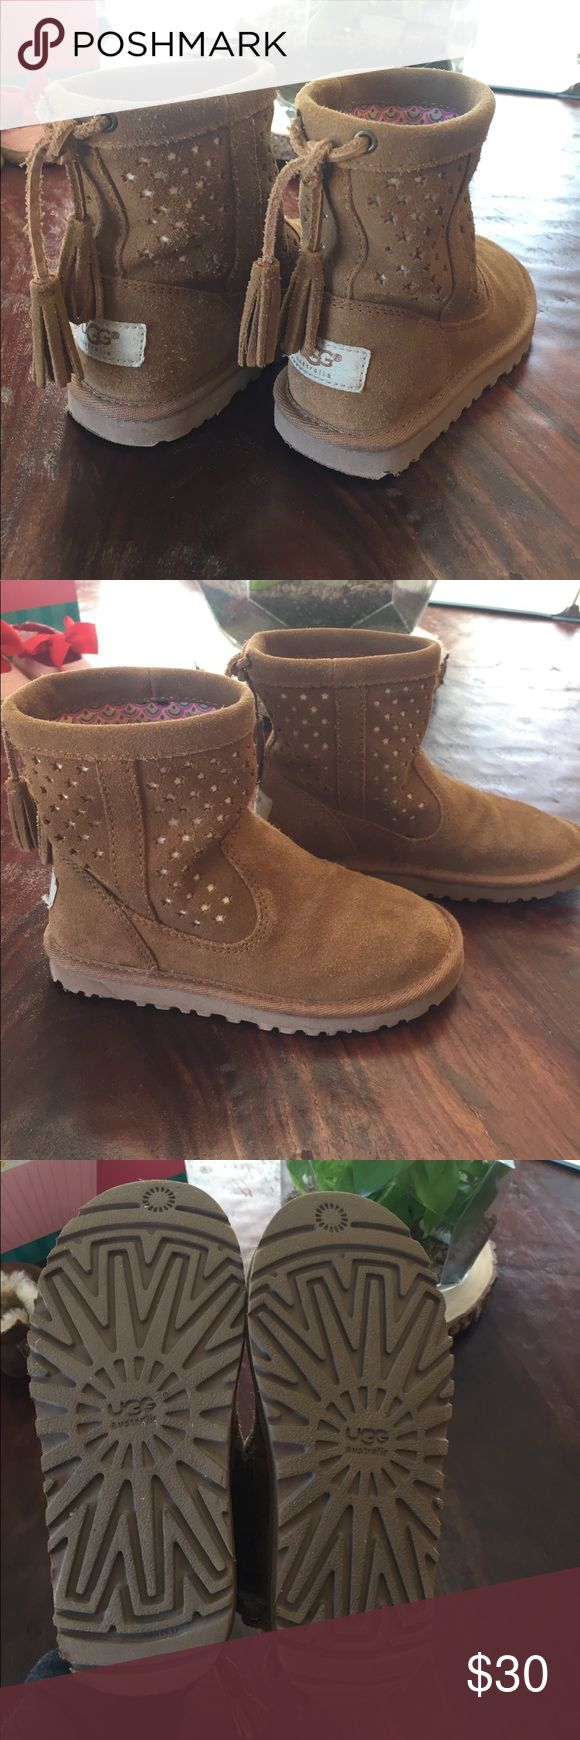 Girls UGG boots Girls UGG boots!! Cutout star detail and tassels on the back. Hardly worn, great condition!! UGG Shoes Boots